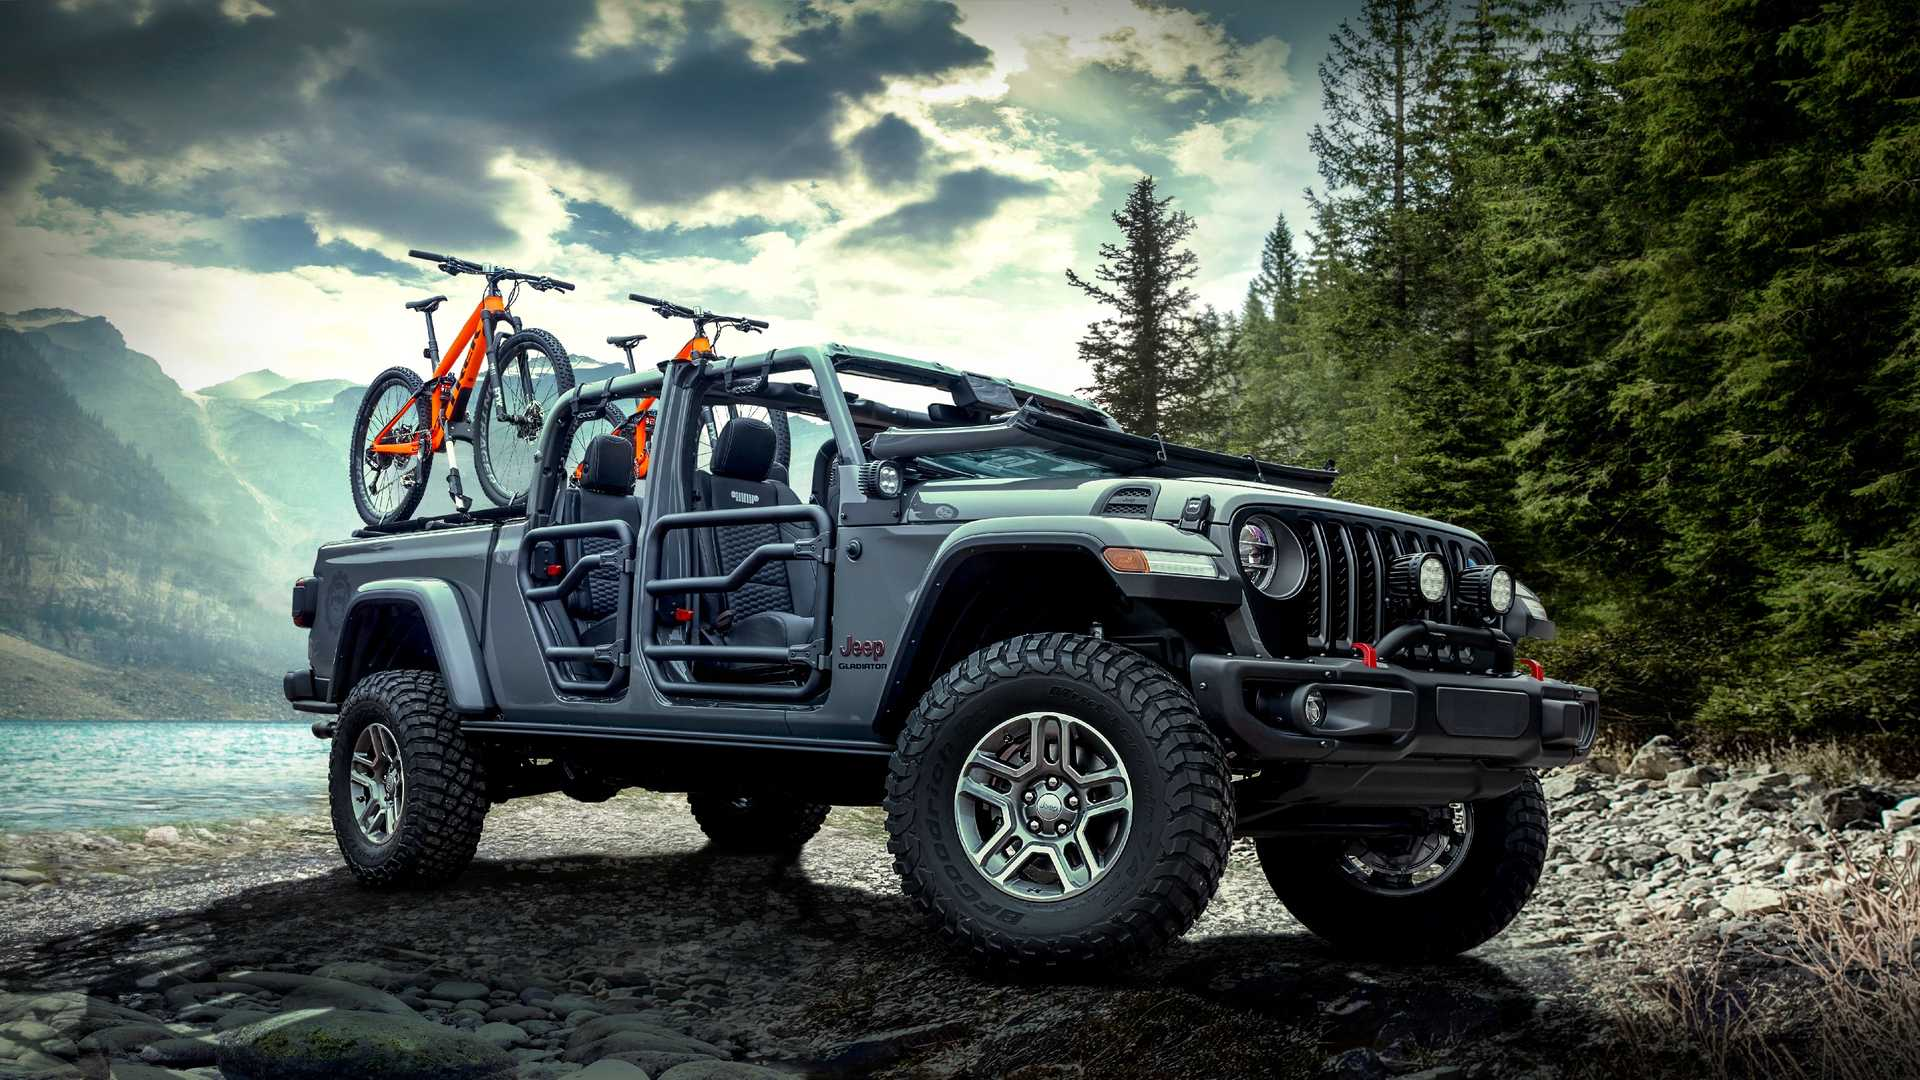 2020 Jeep Gladiator Upgrades